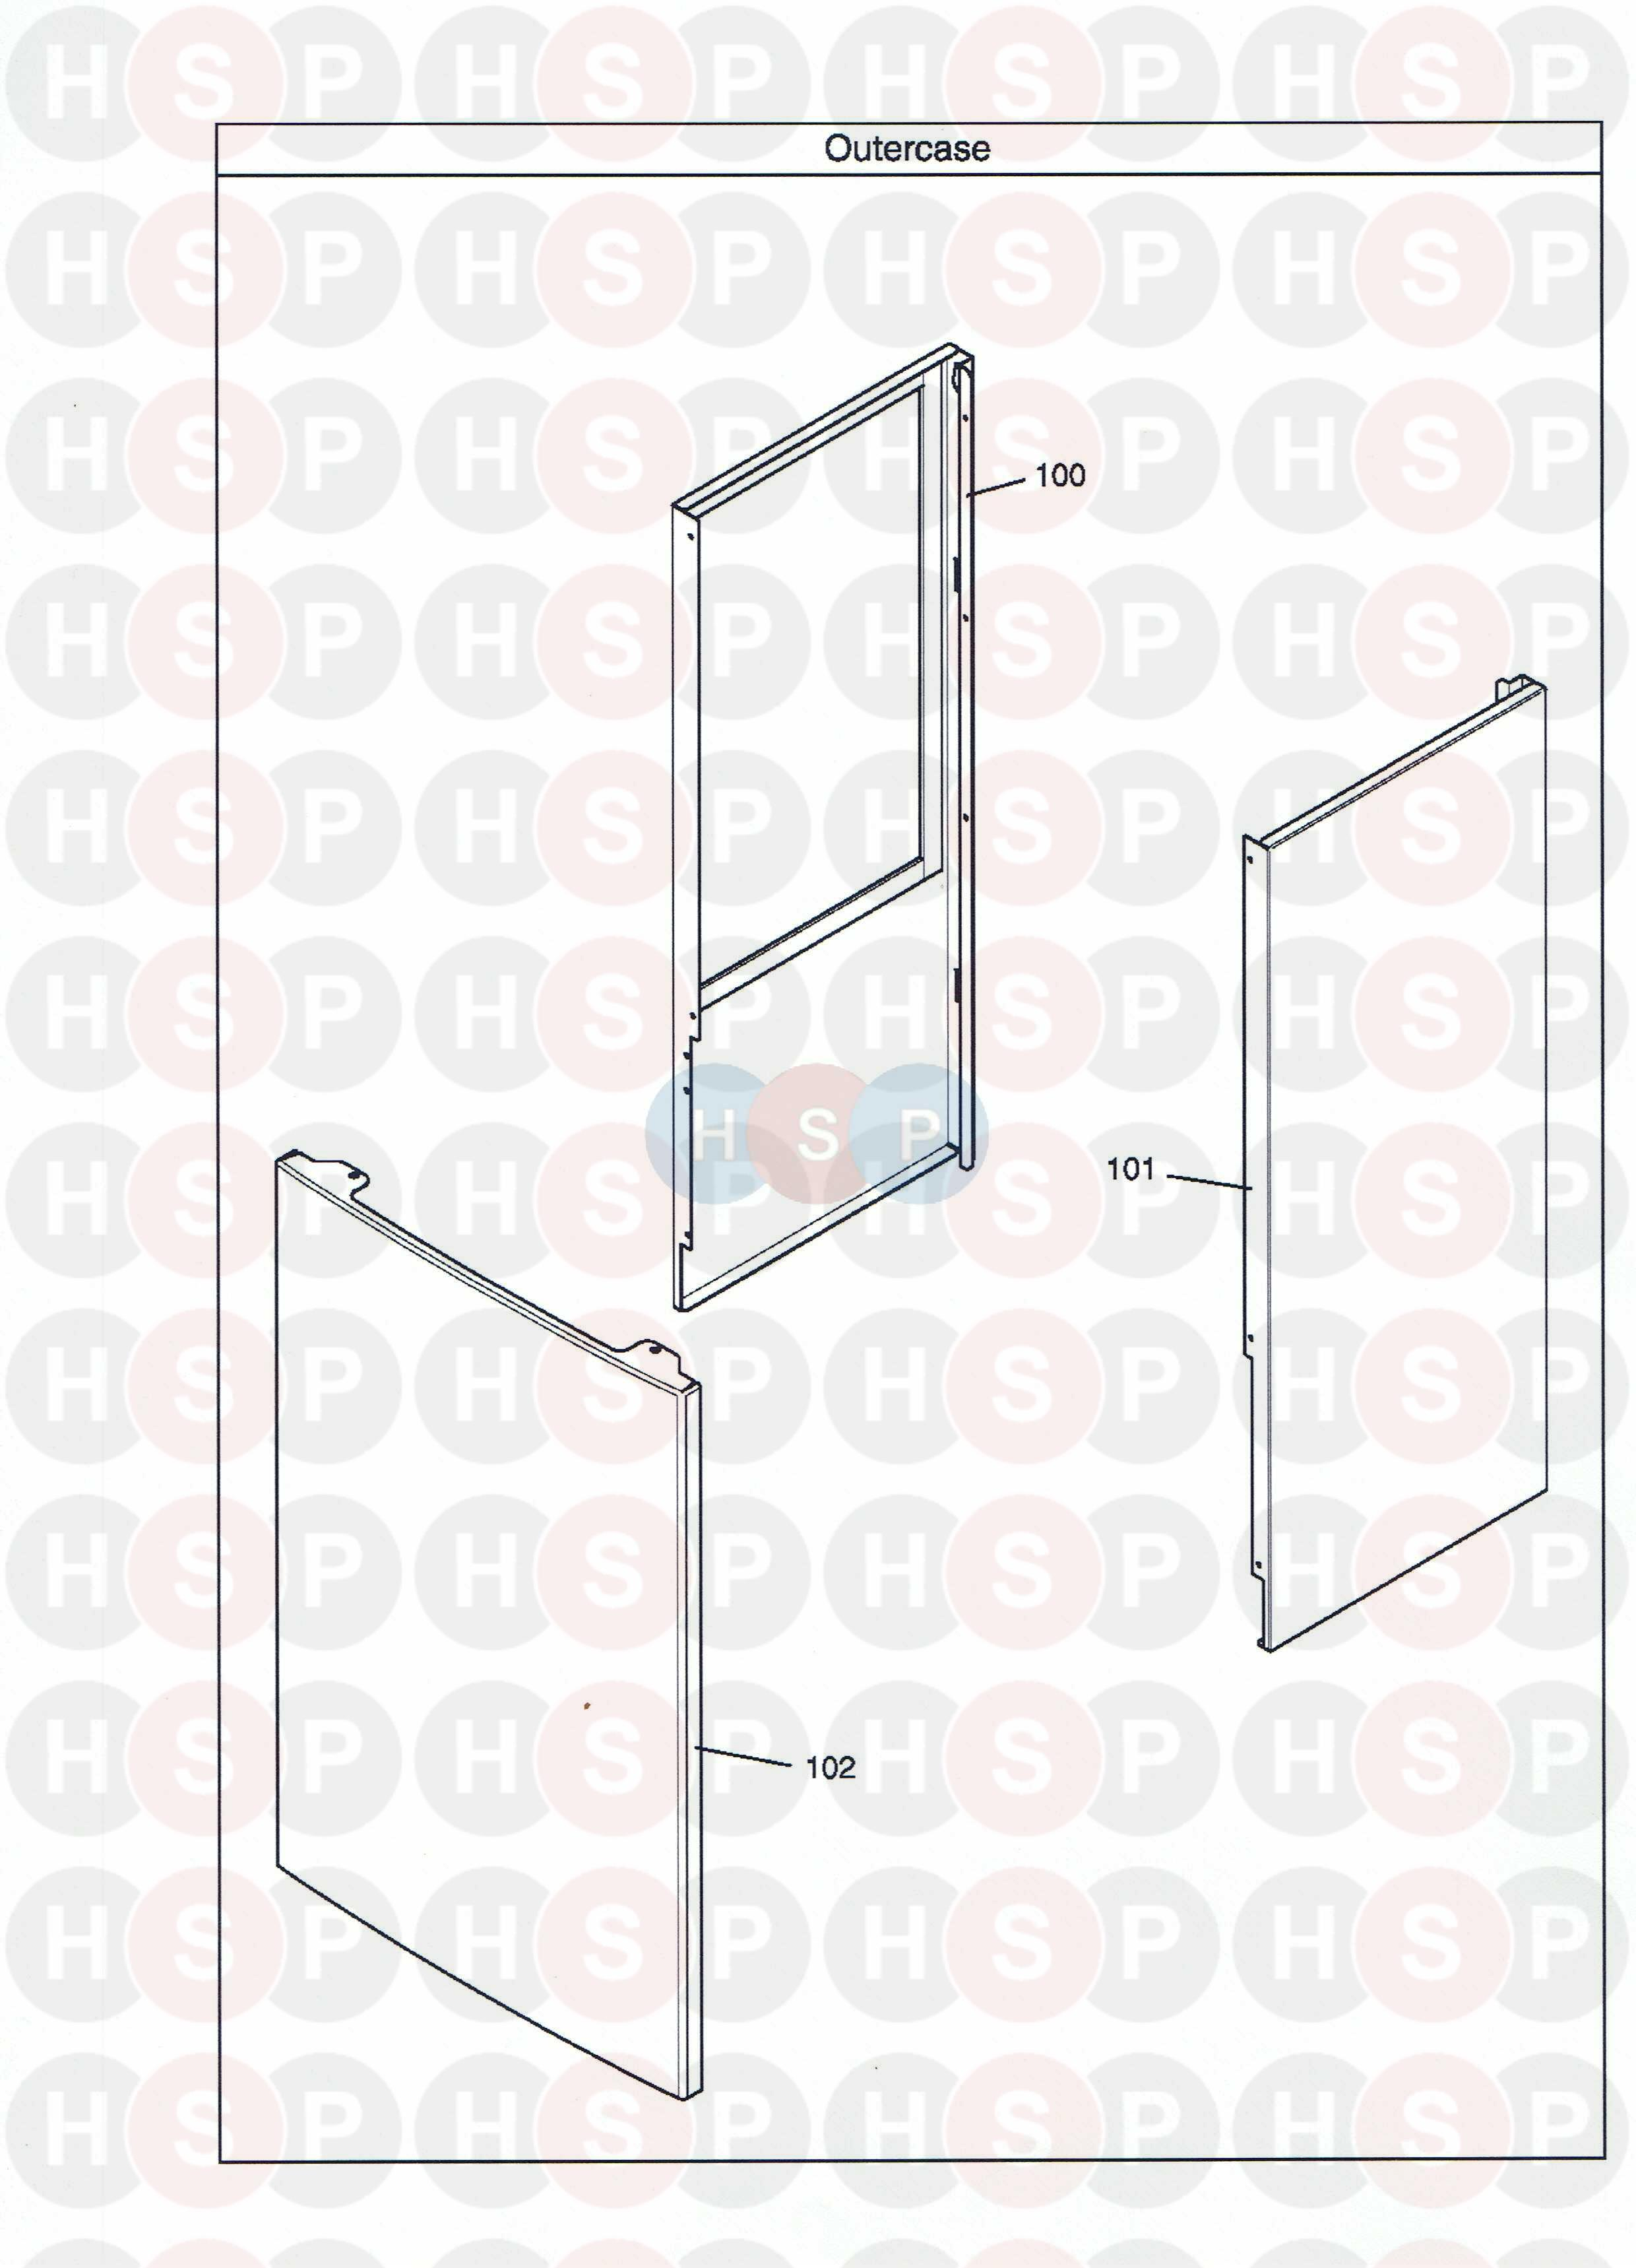 Potterton Gold 28 He Combi Outer Case Diagram Heating